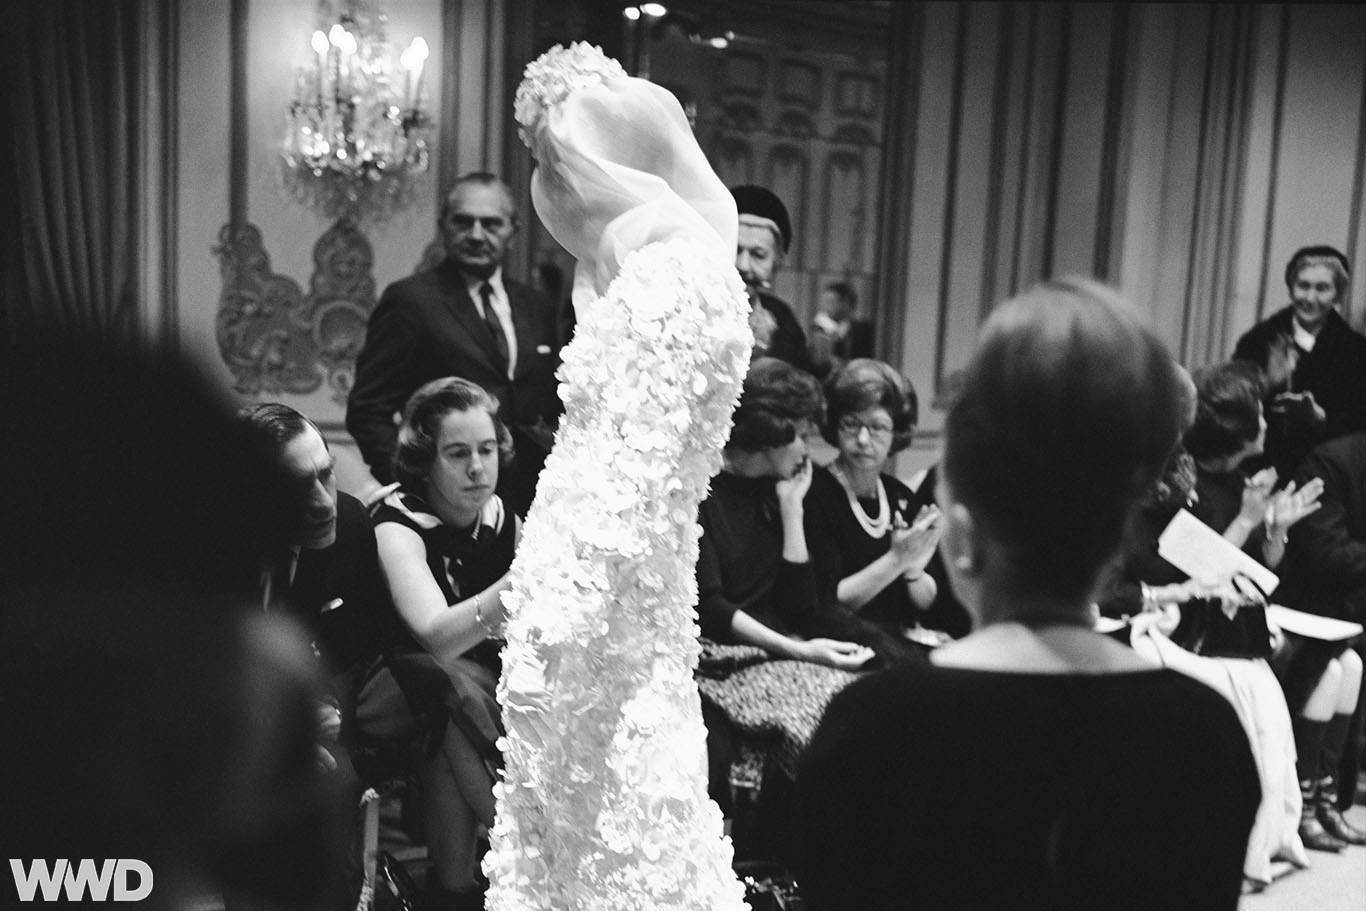 Buyers examine the fabric of a floor-length bridal gown with floral appliqué, veil and headpiece from the James Galanos Couture Spring 1964 collection.